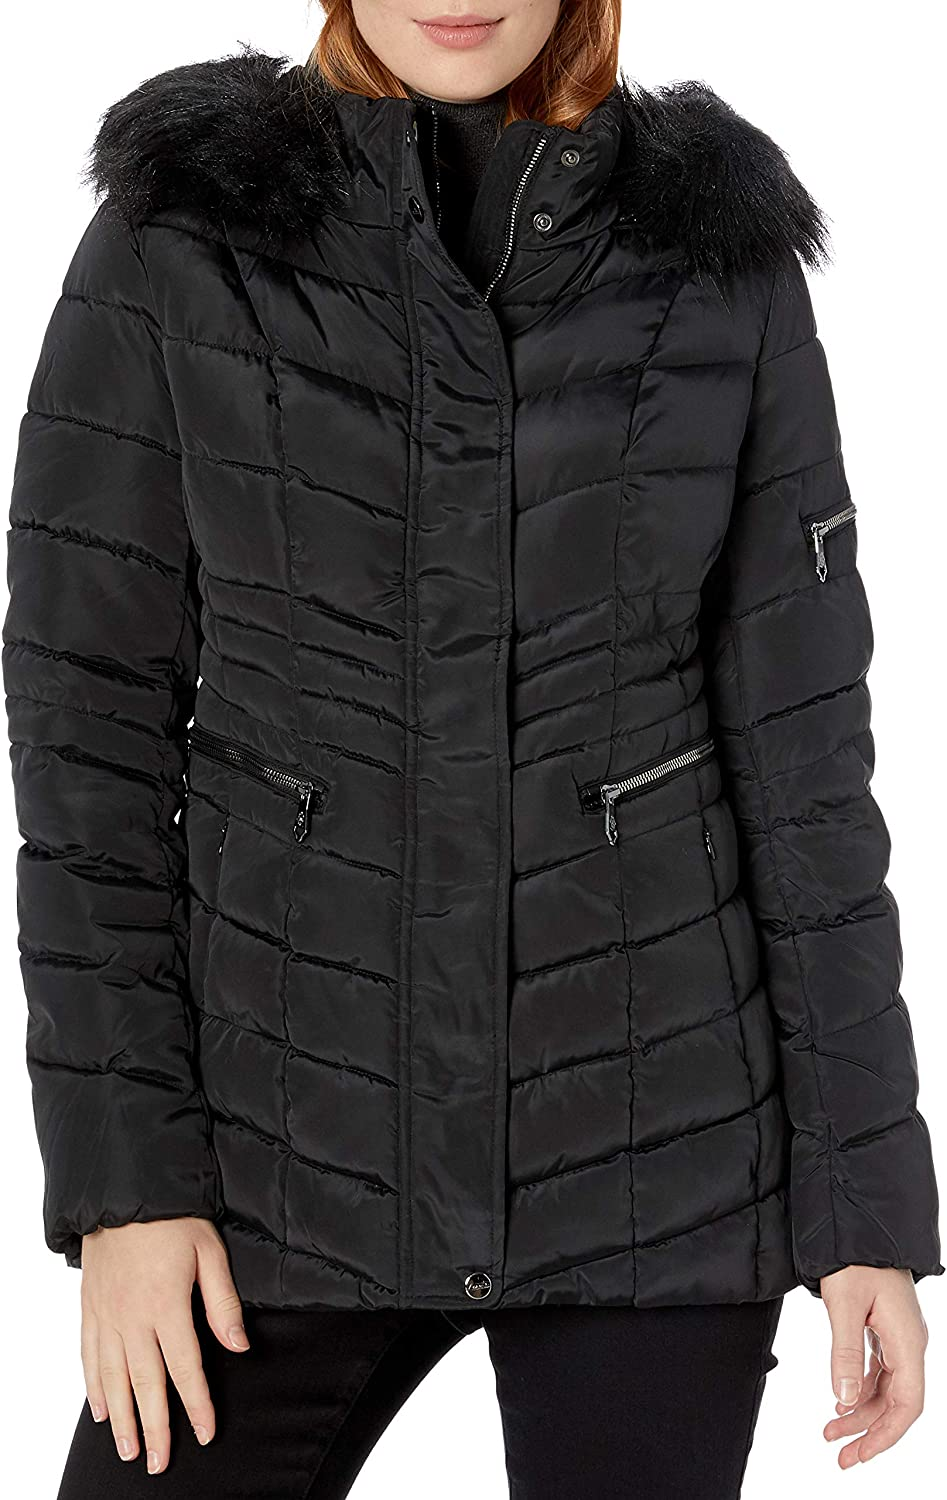 Nanette Lepore Women's Chevron Quilted Puffer Jacket